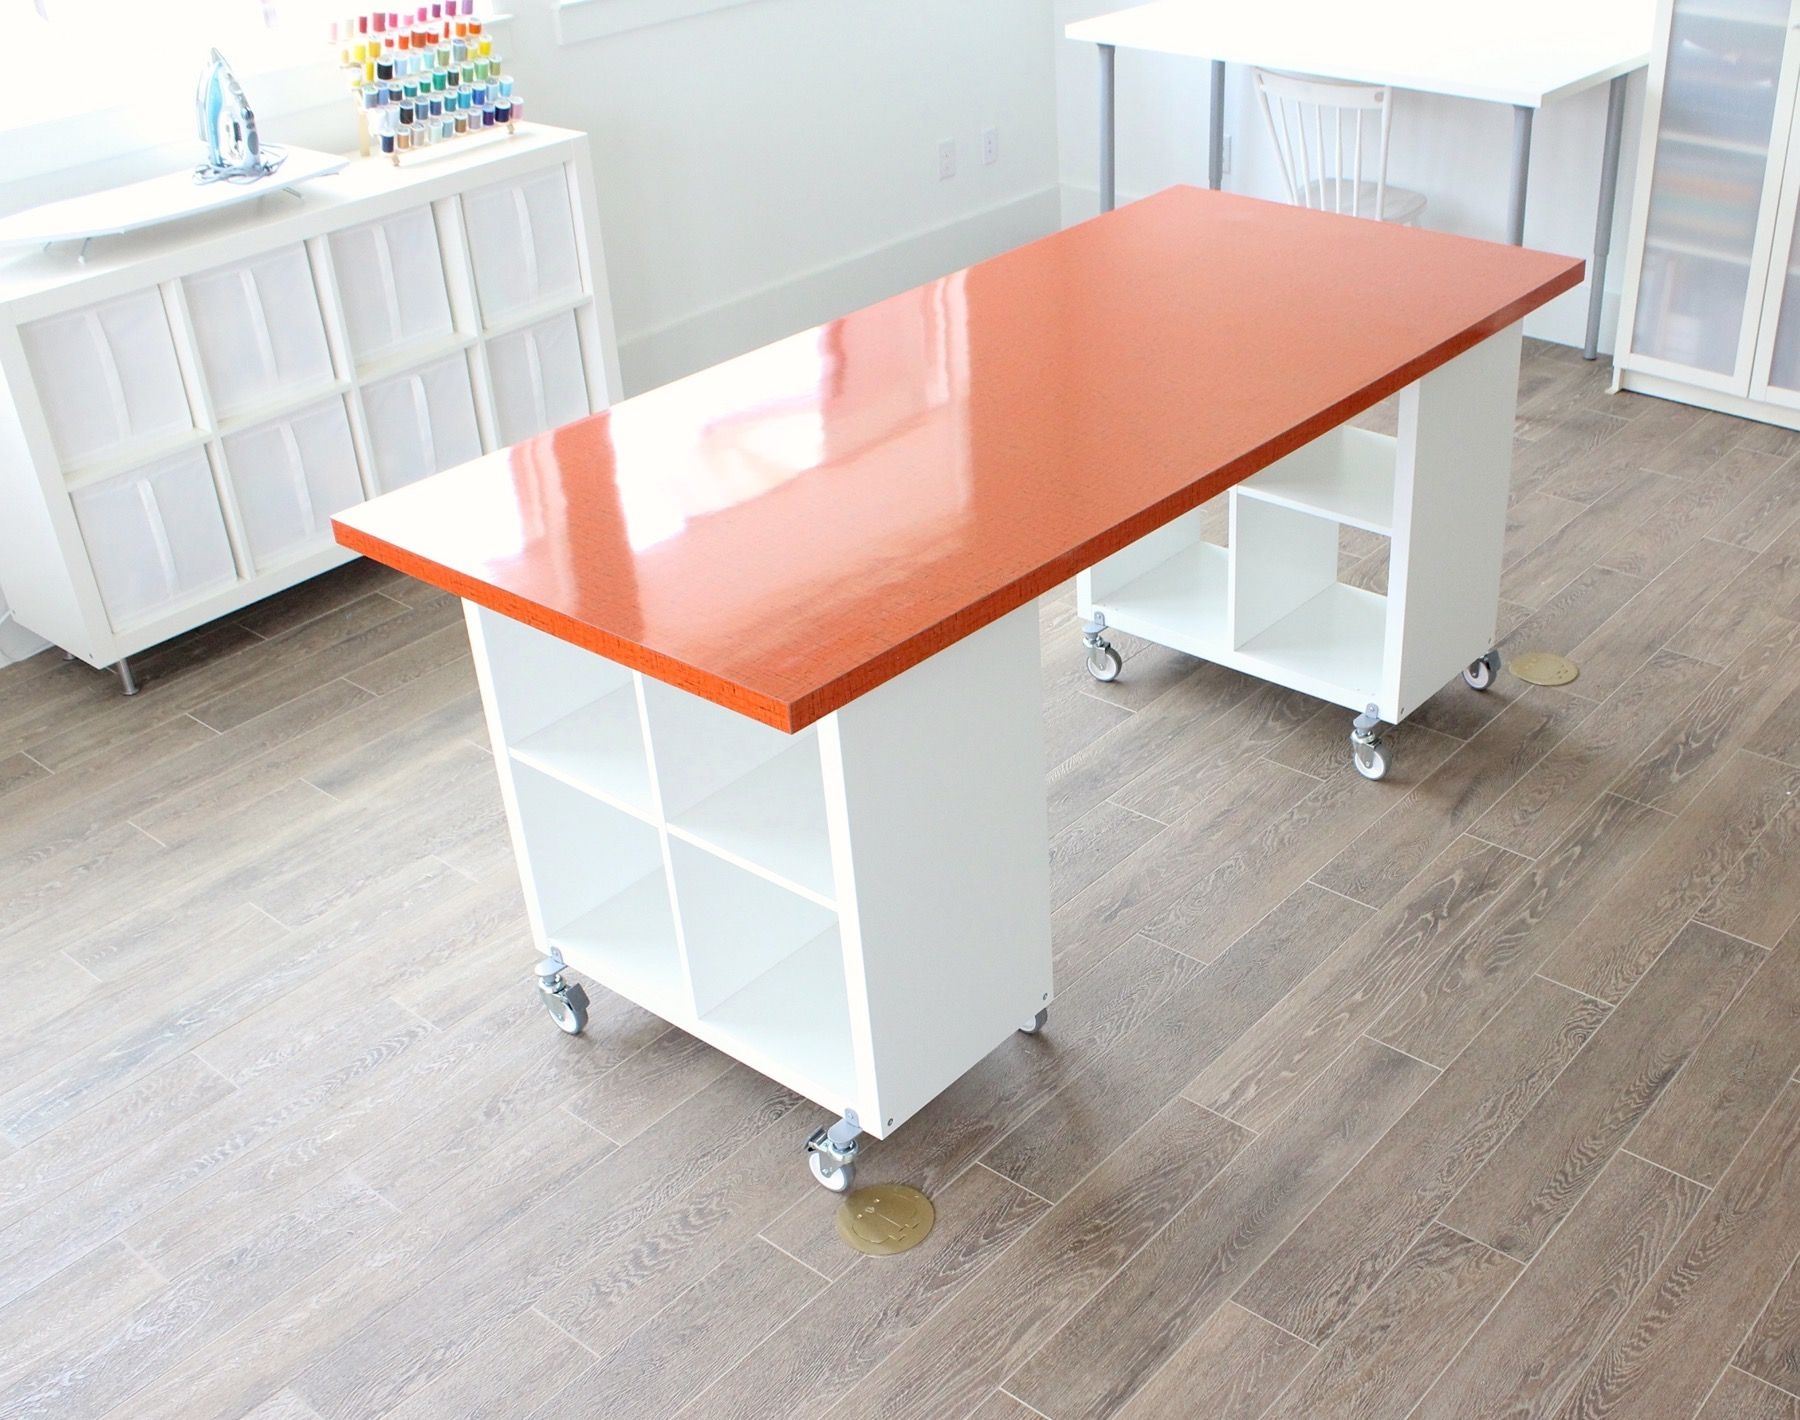 Building A New Home: The Formica Craft Table! U2013 MADE EVERYDAY